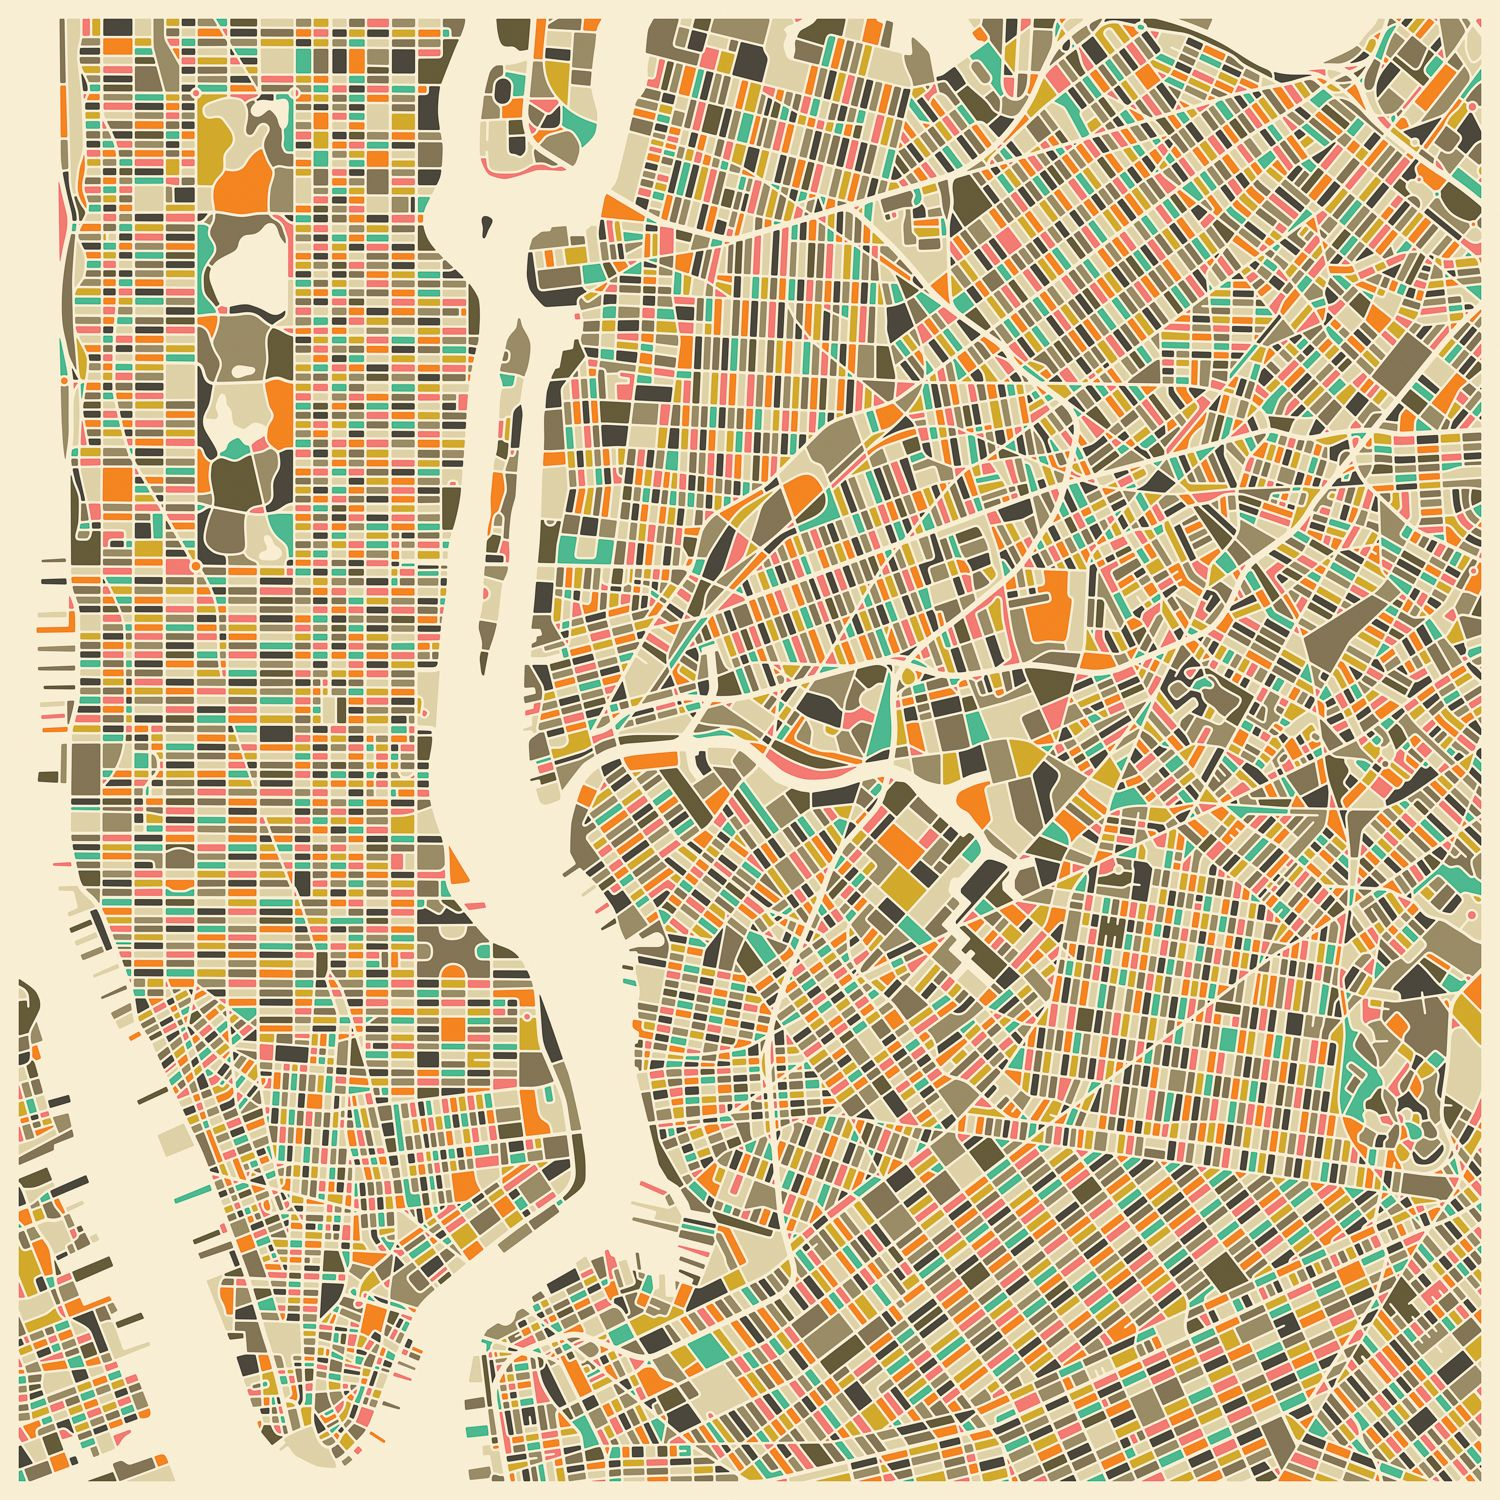 Abstract City Map of New York City Canvas Art by Jazzberry Blue ...